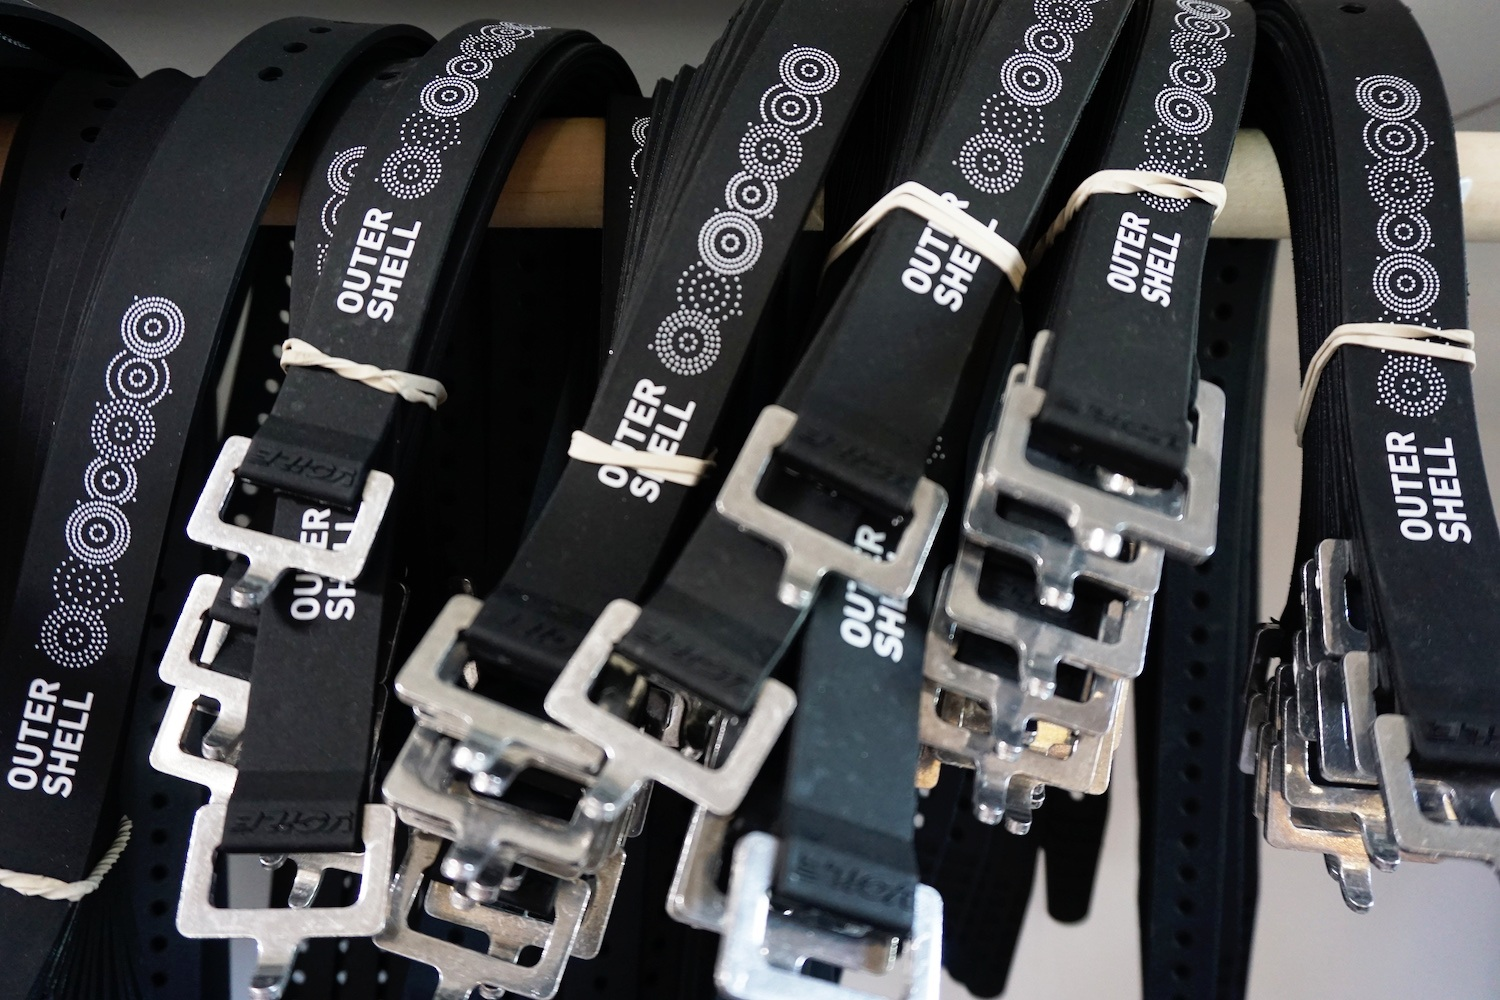 Logo Voilé Straps come in three sizes and are great for securing larger items like a sleeping bag, tent, or stuff sack